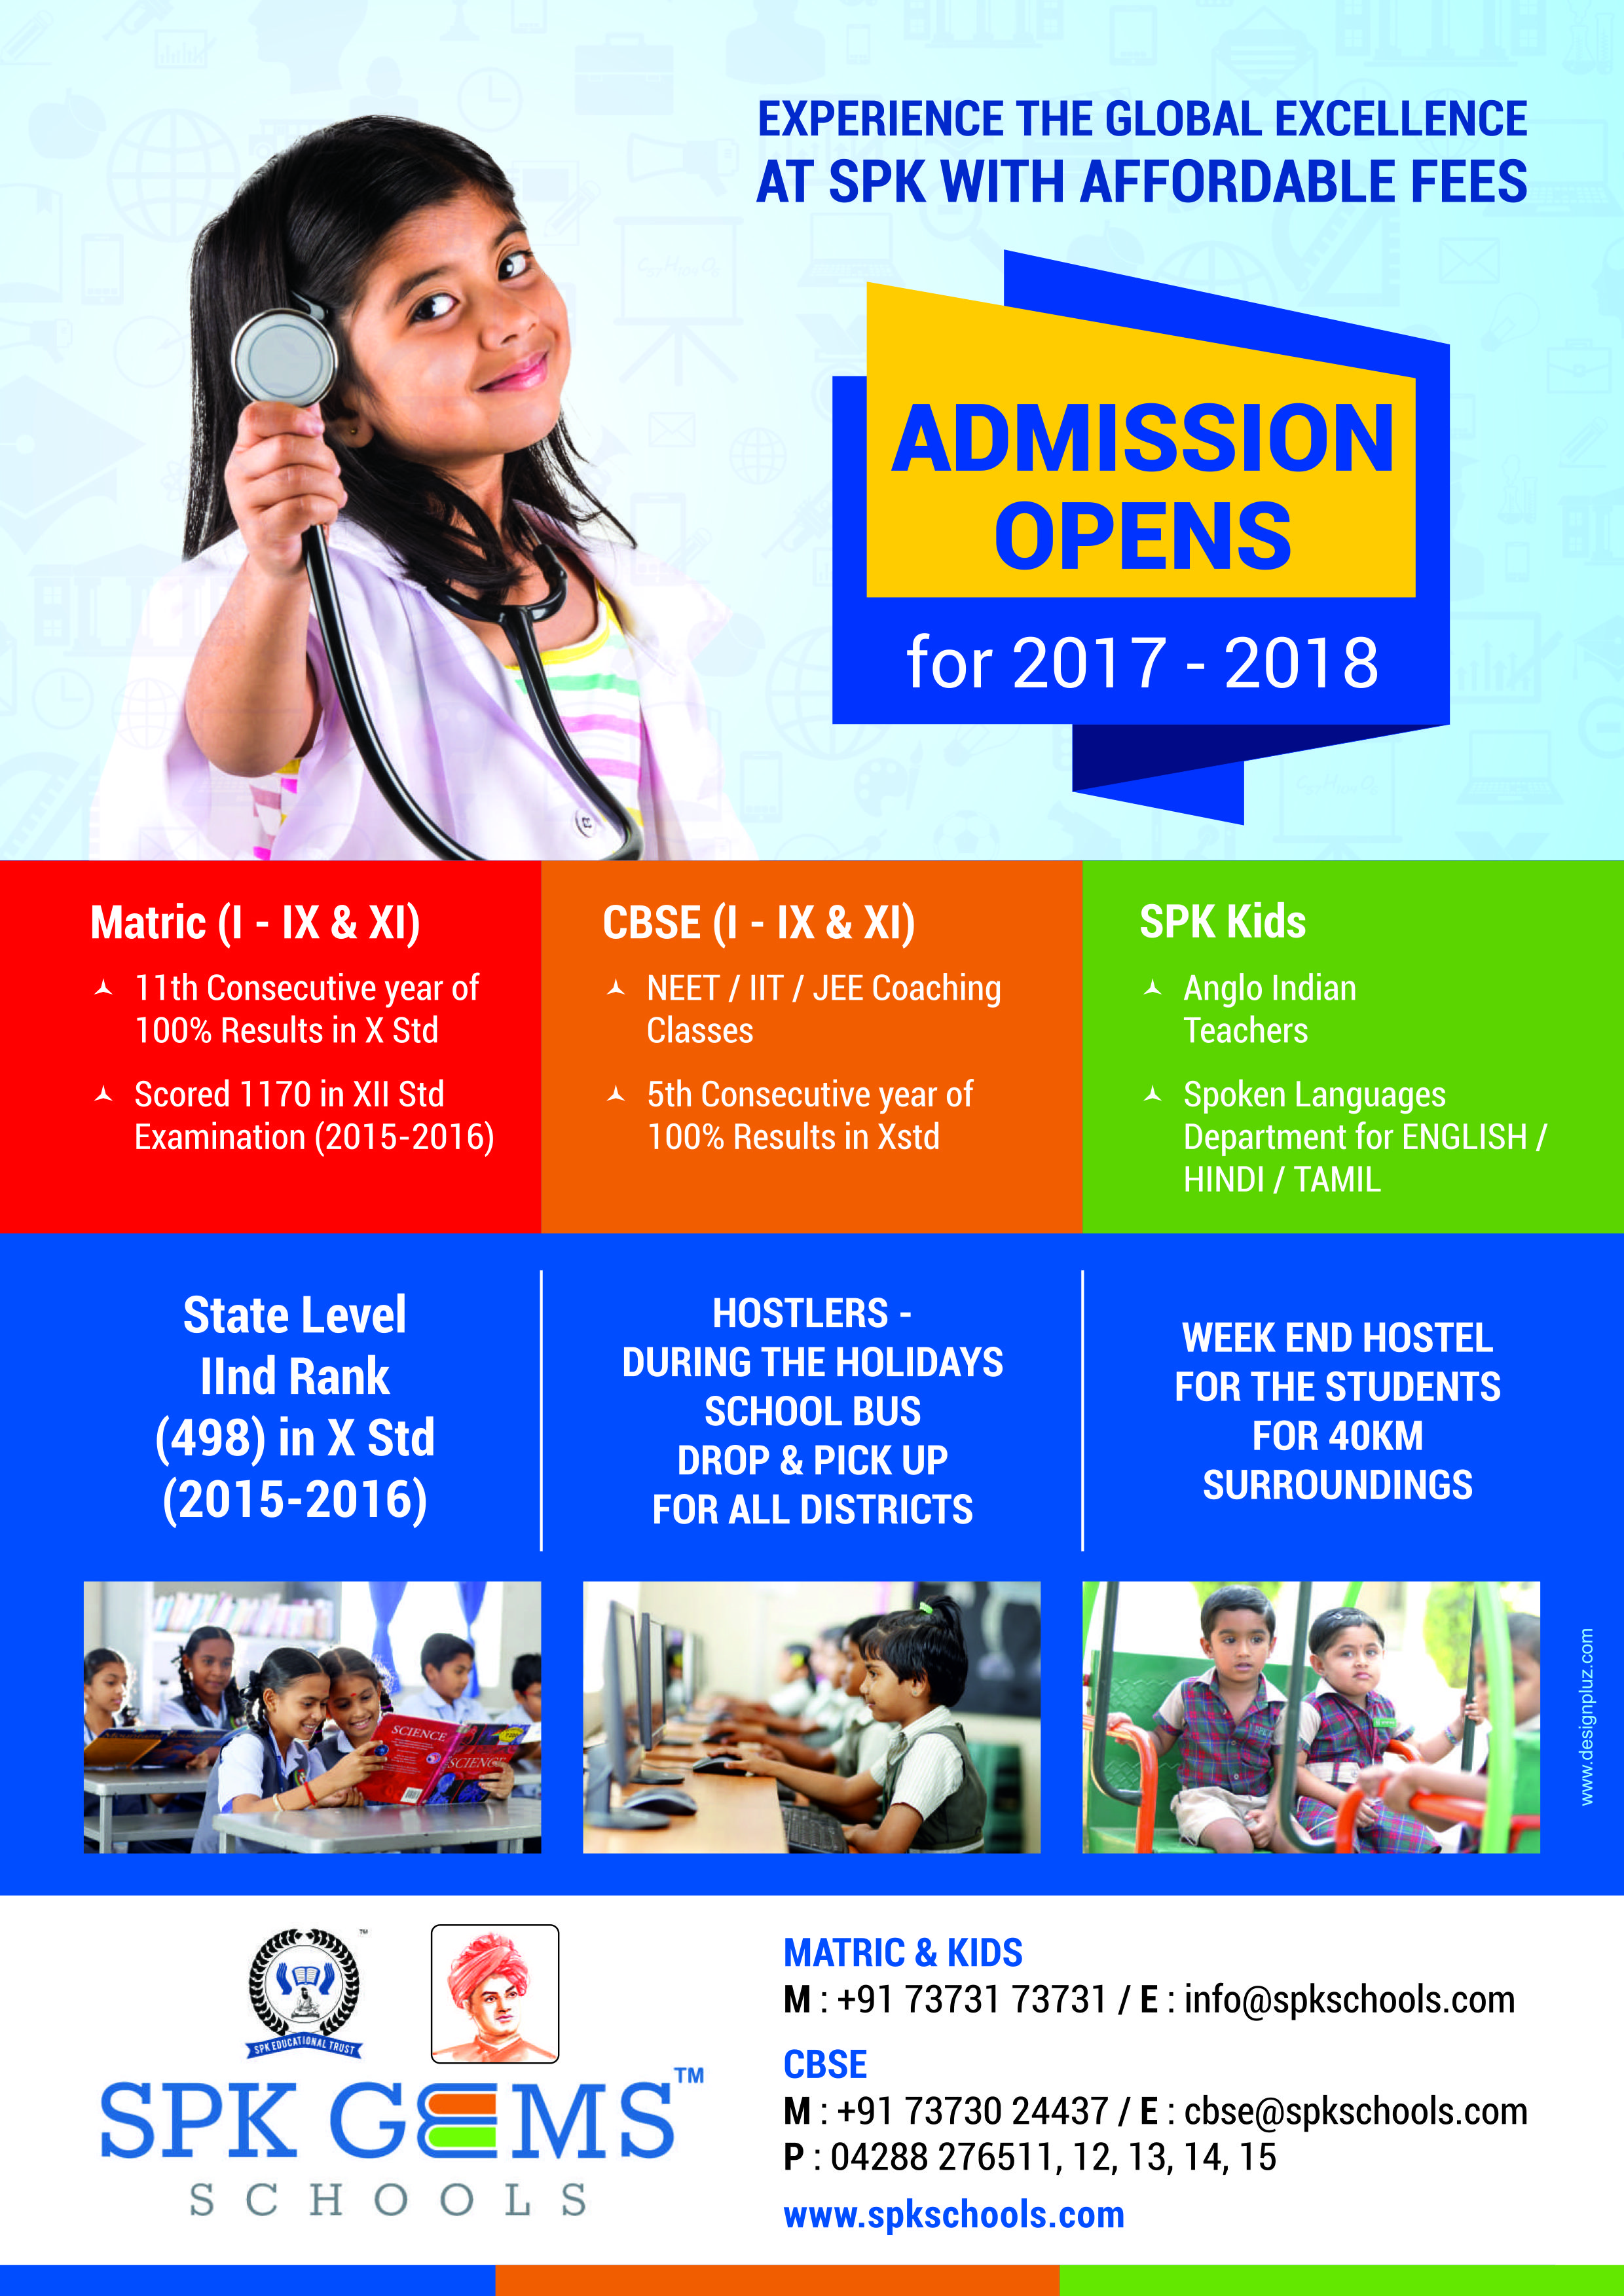 admissions open for 2017